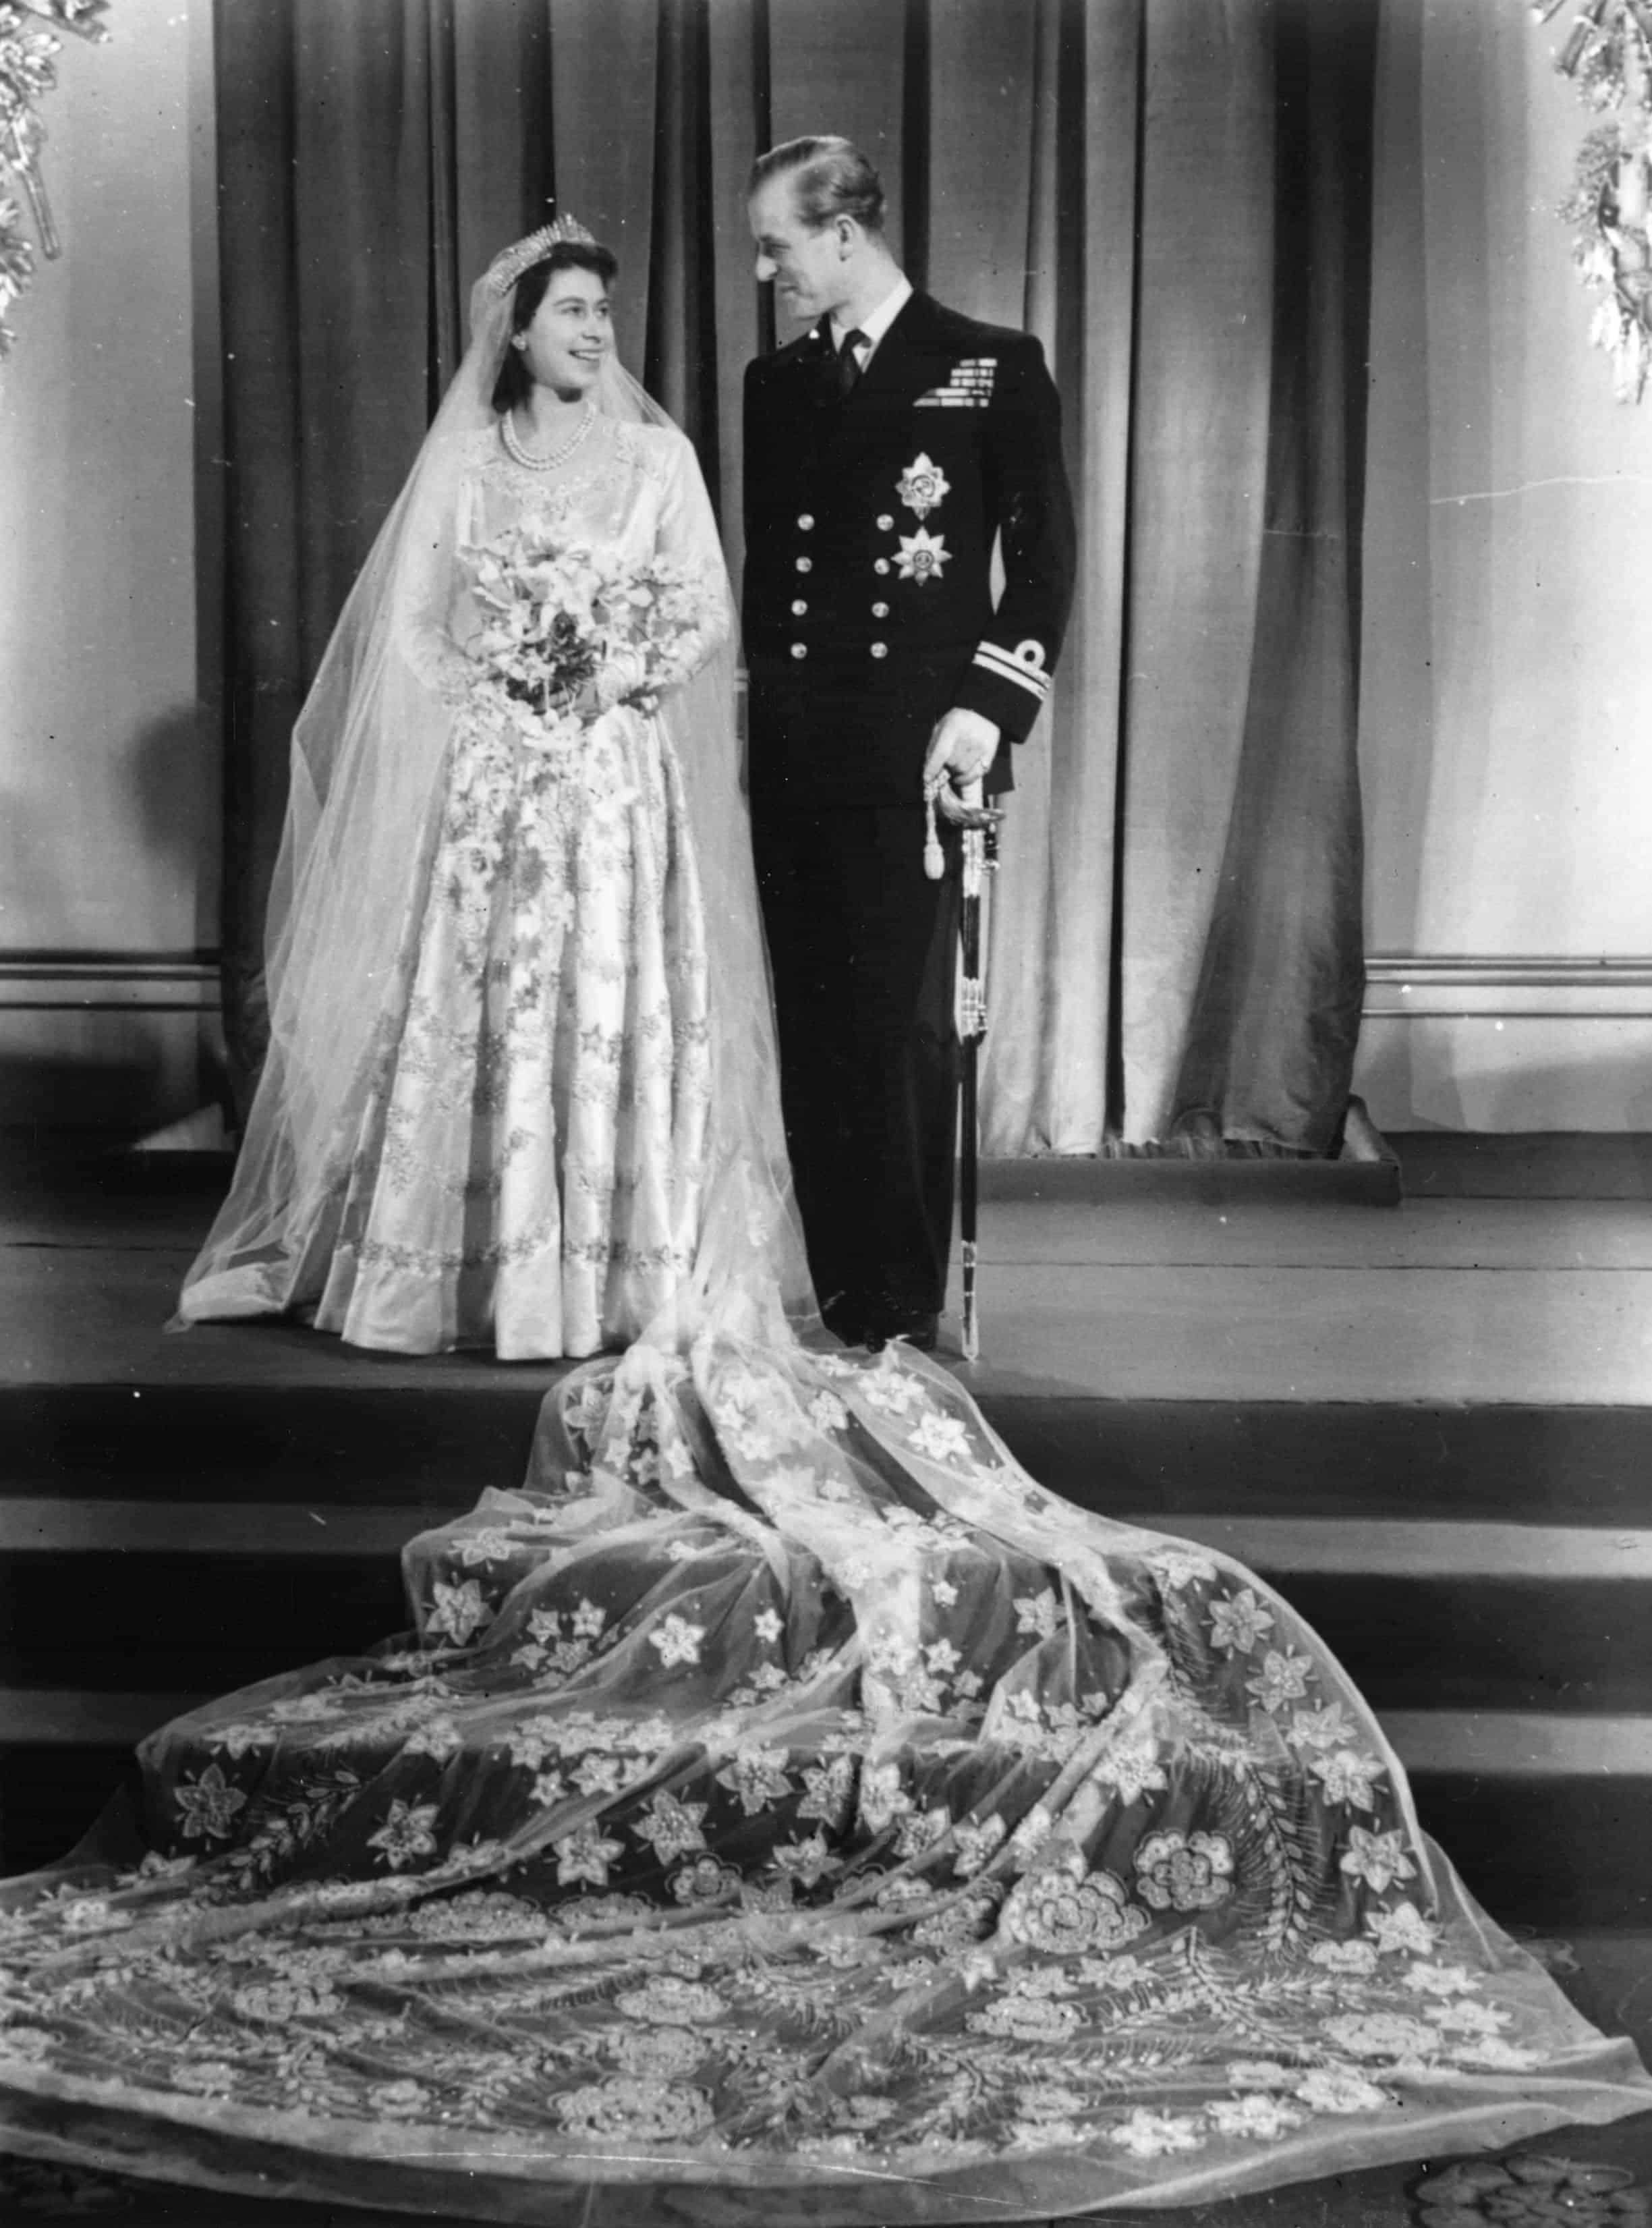 Royal Wedding Dresses Through the Years